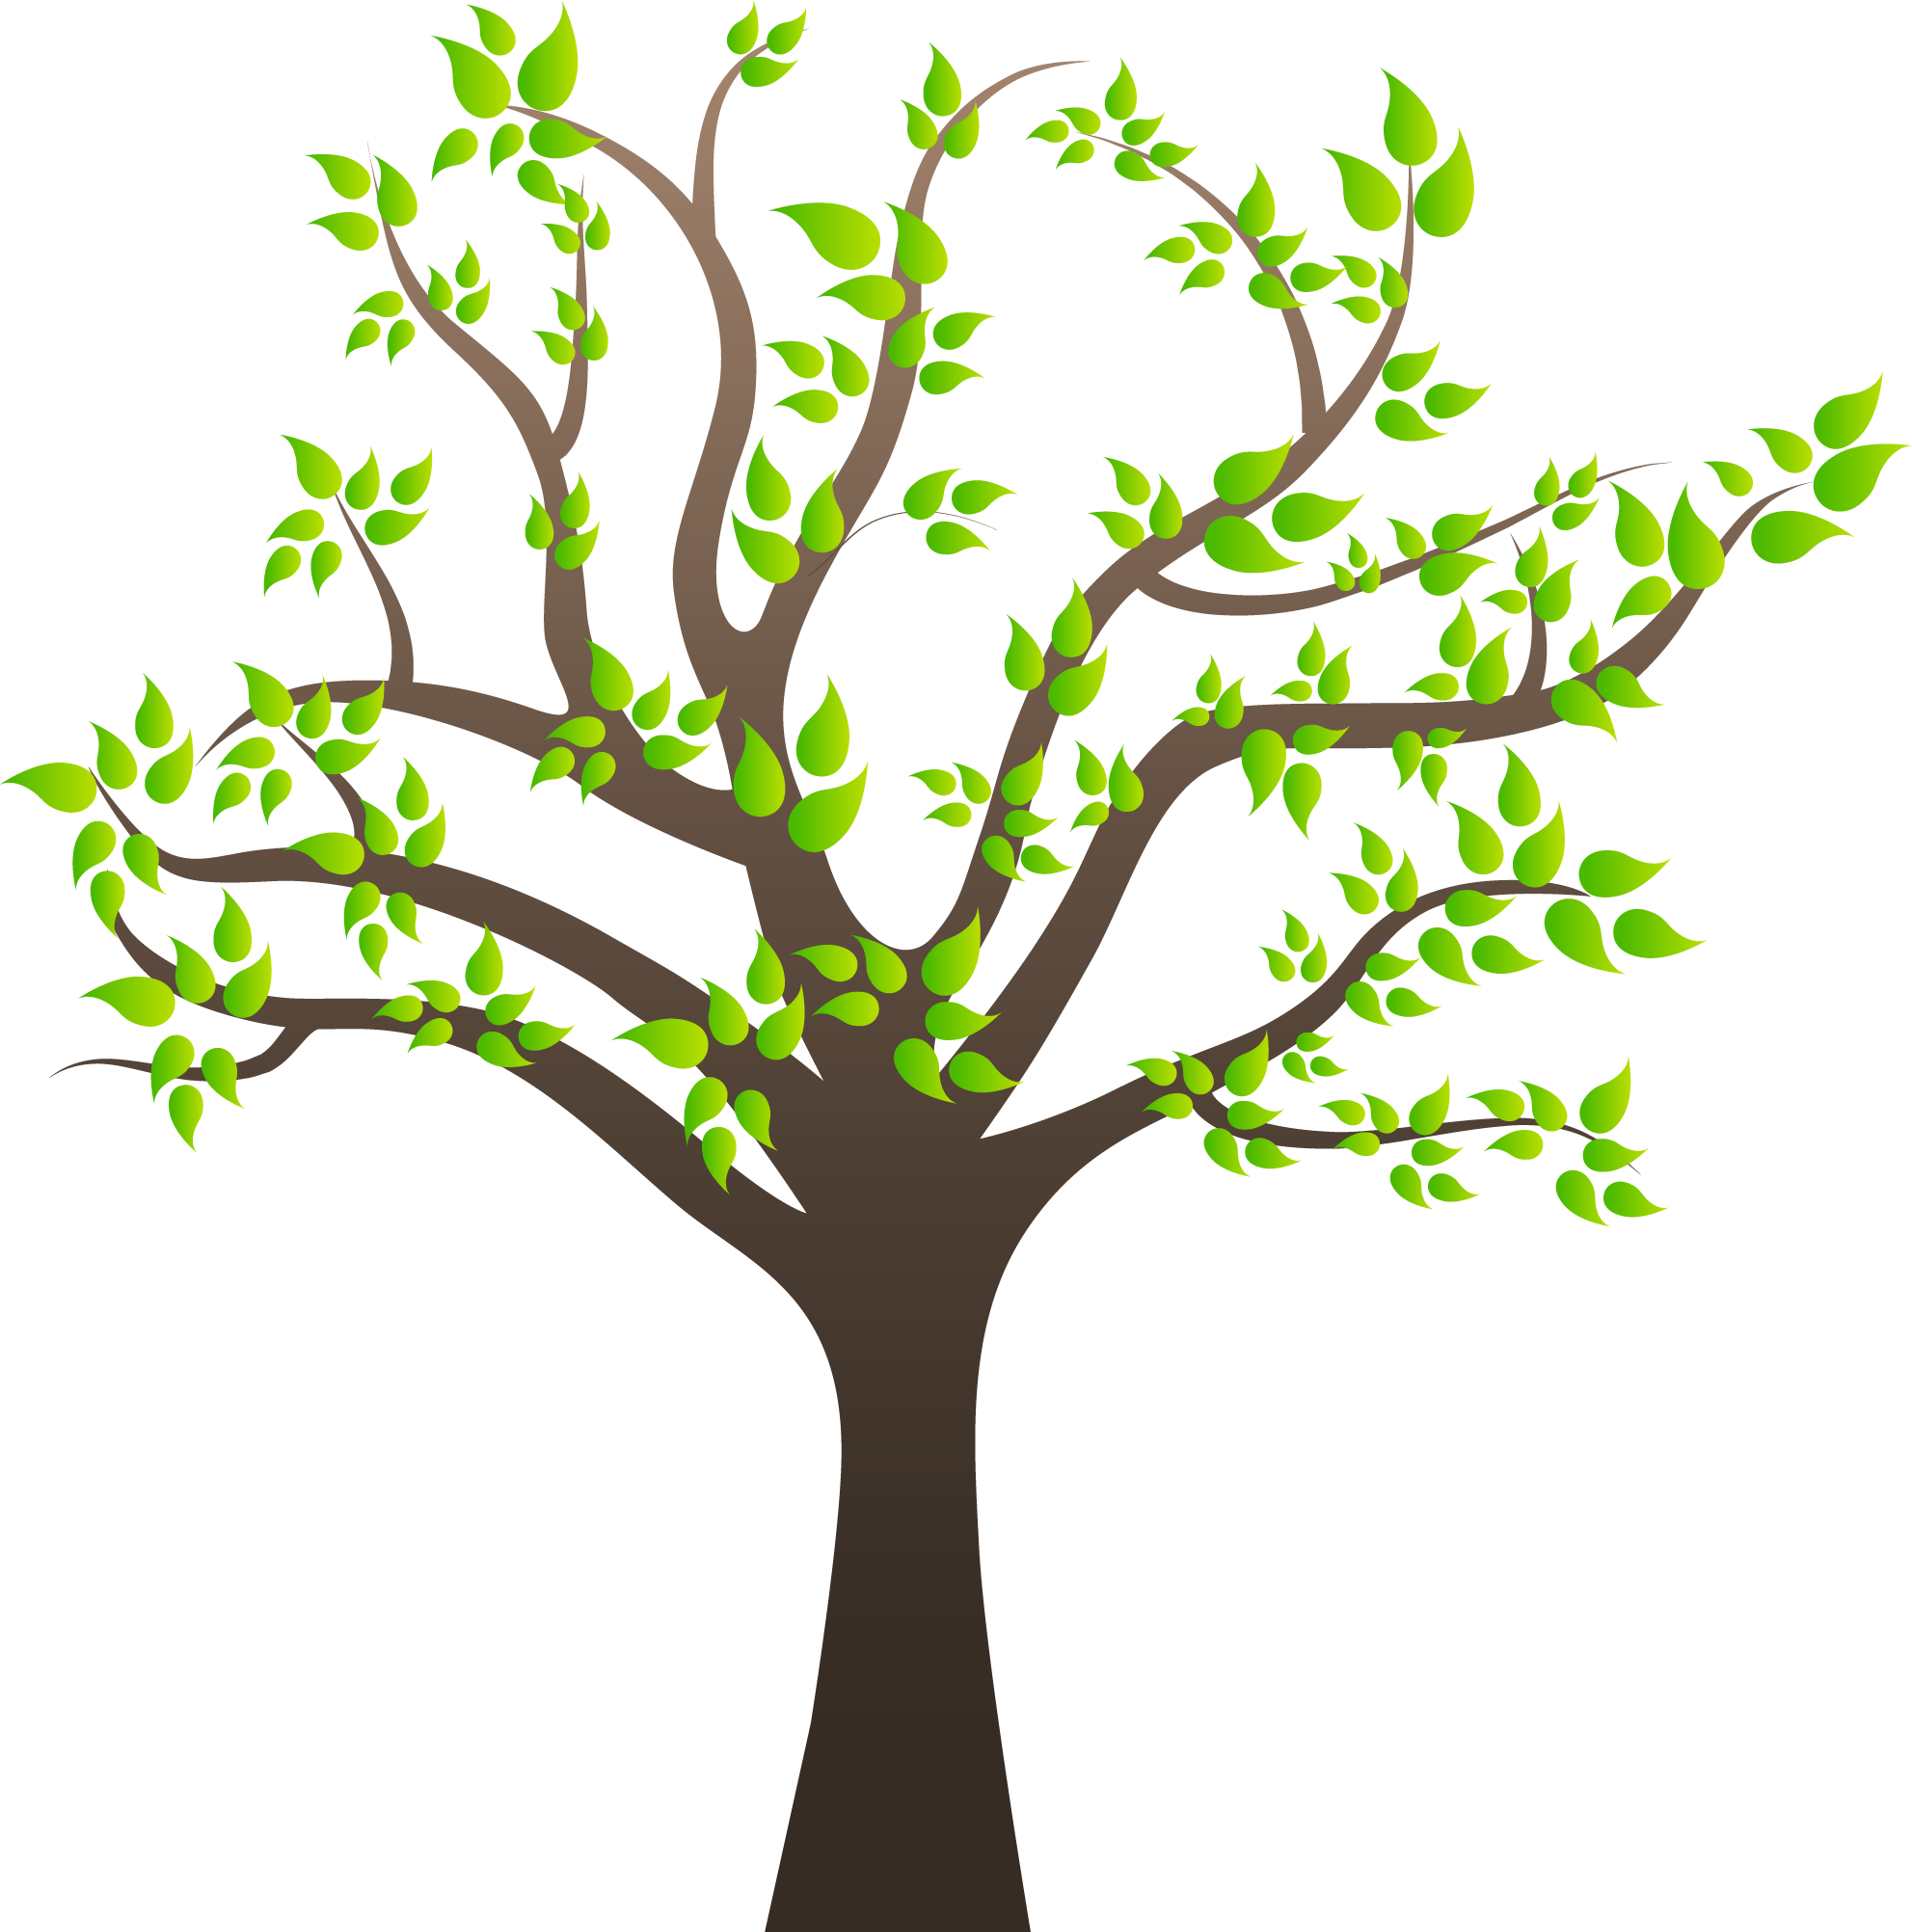 Svg Transparent Stock Images Quality Transparent Pictures - Tree With Branches Clipart Png (1983x2004), Png Download